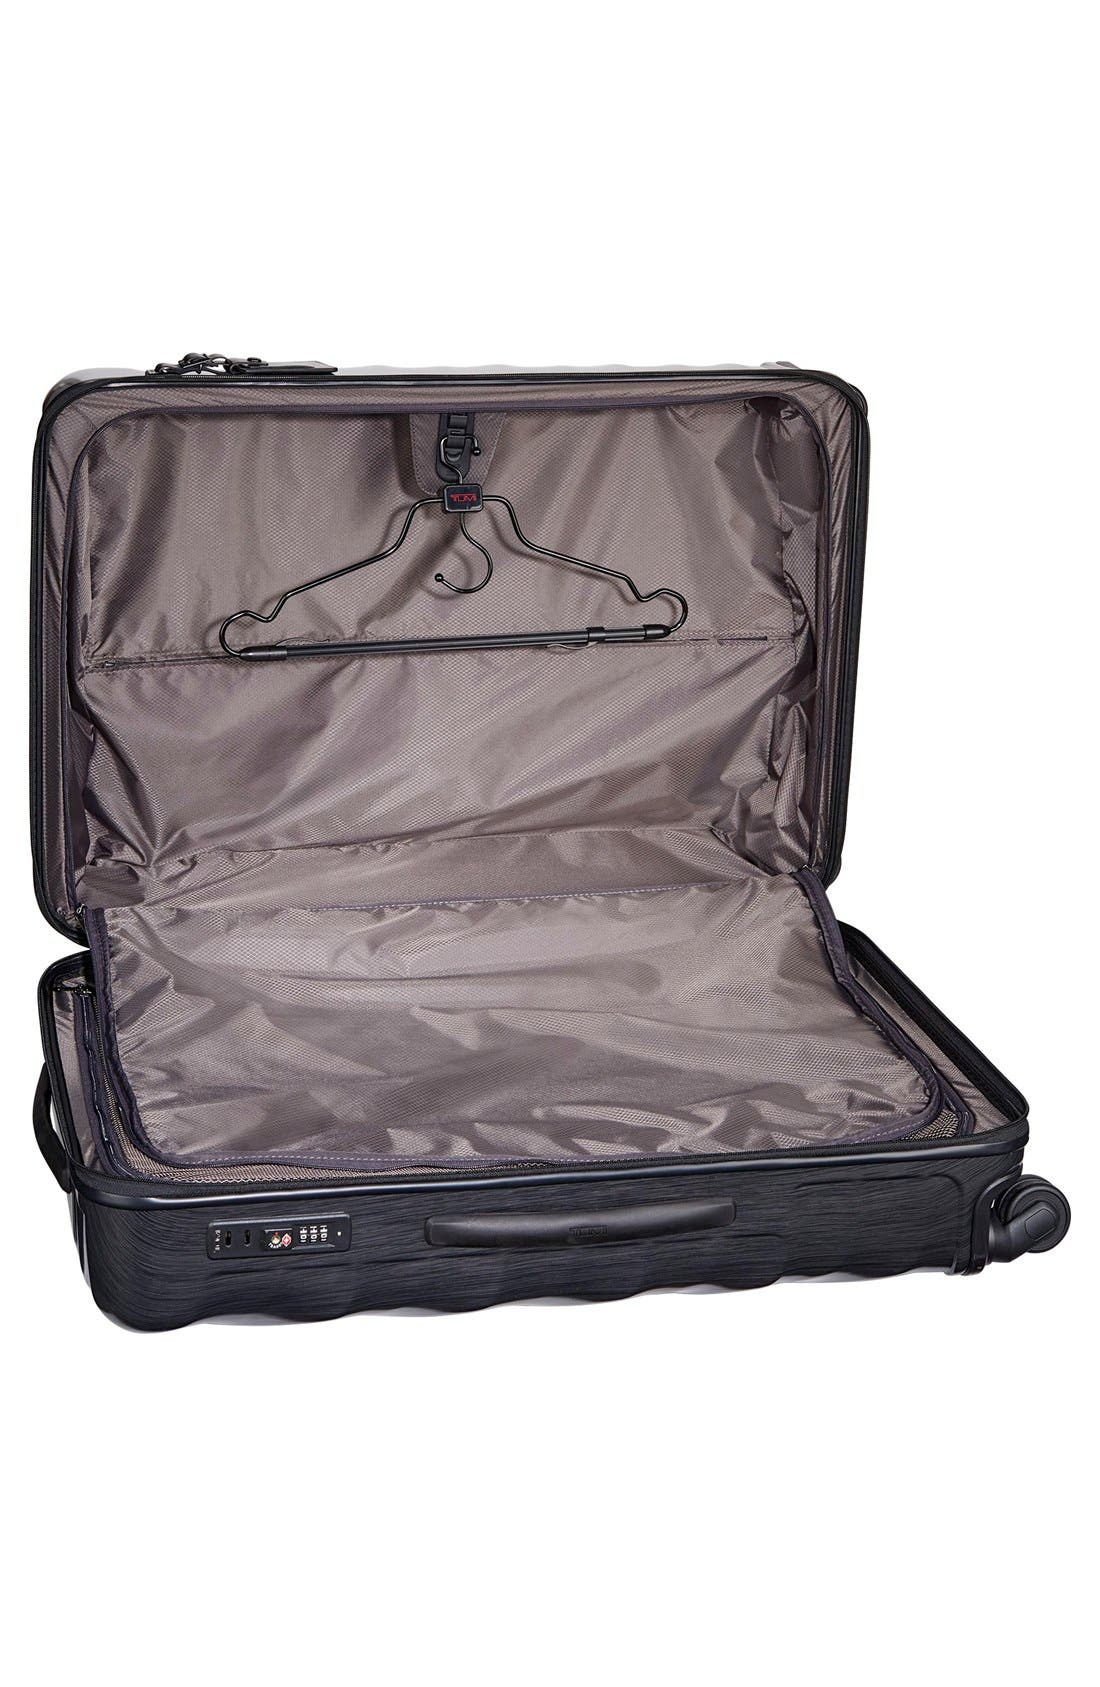 19 Degree 30 Inch Extended Trip Wheeled Packing Case,                             Alternate thumbnail 5, color,                             001